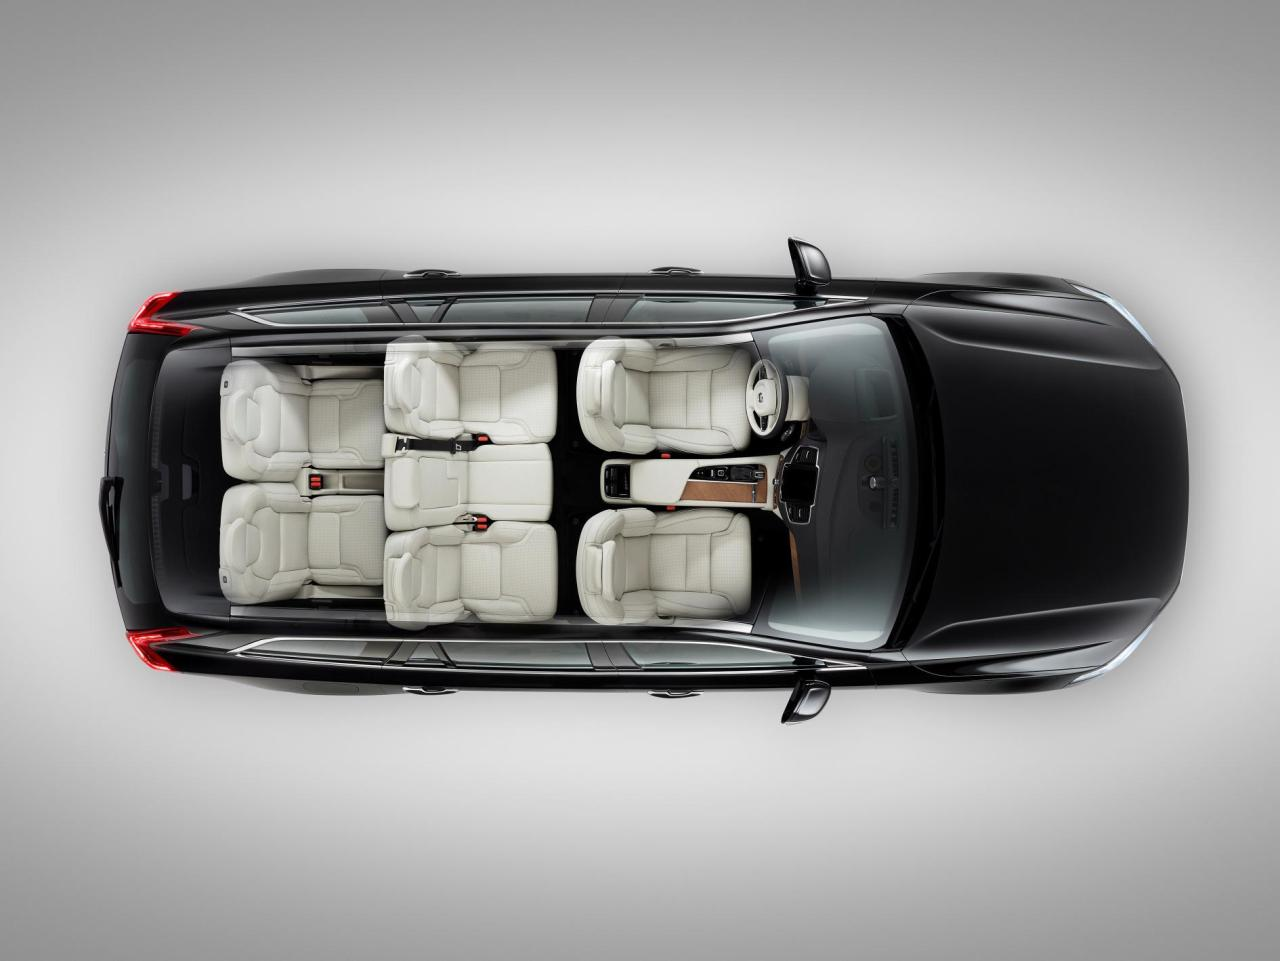 The Volvo XC90 features a flexible seven seat layout.